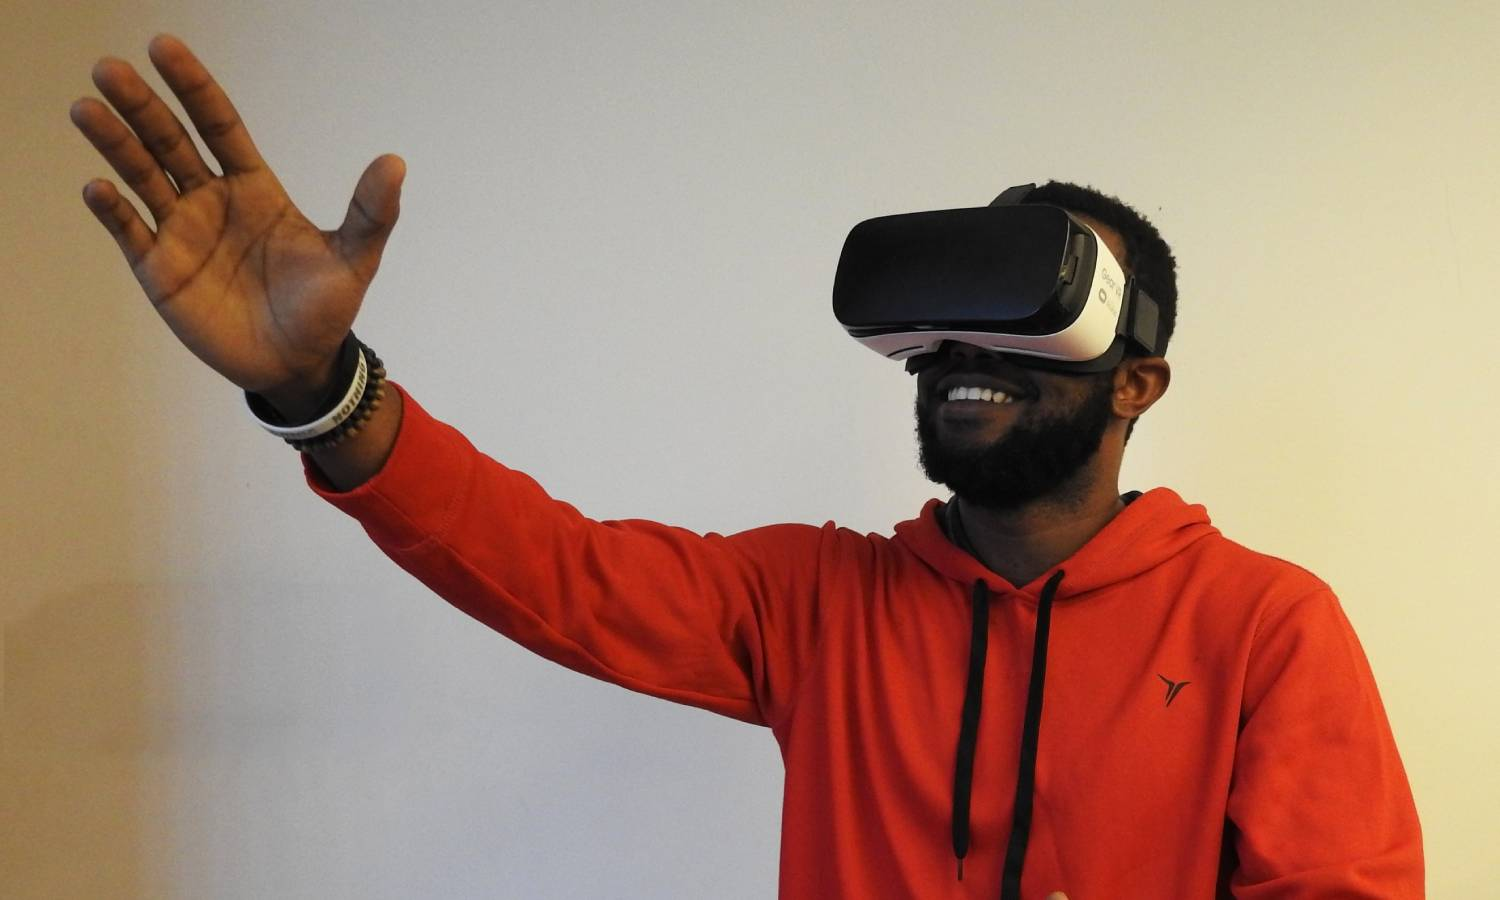 Person with VR visor